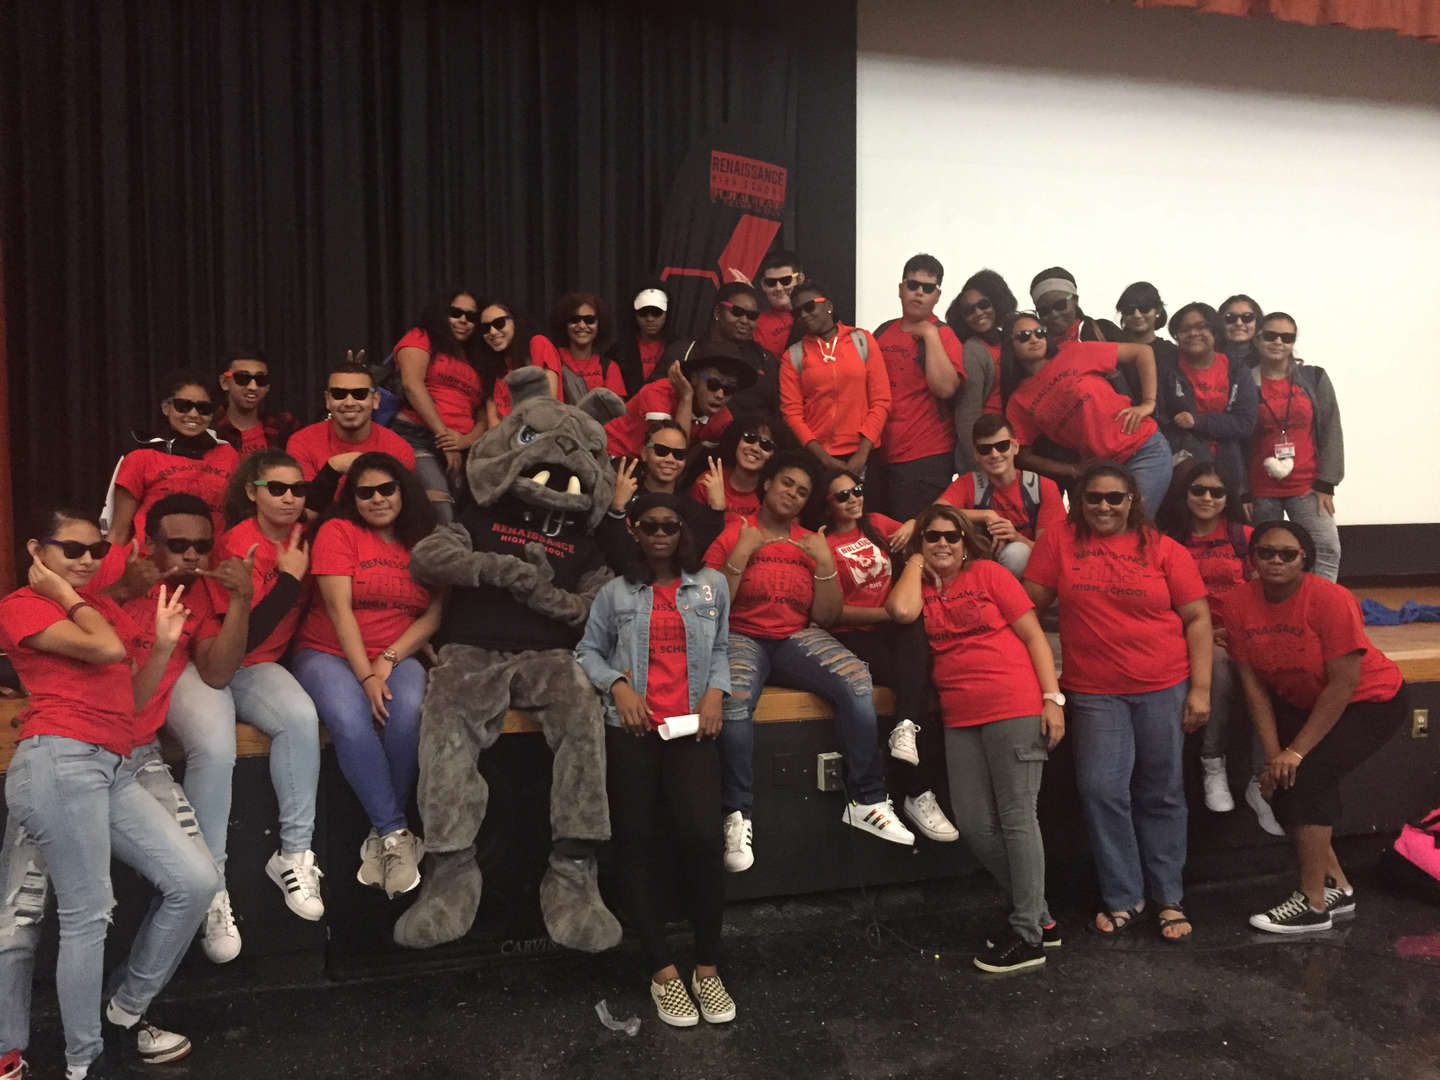 Large group of students wearing sunglasses with Bulldog Mascot